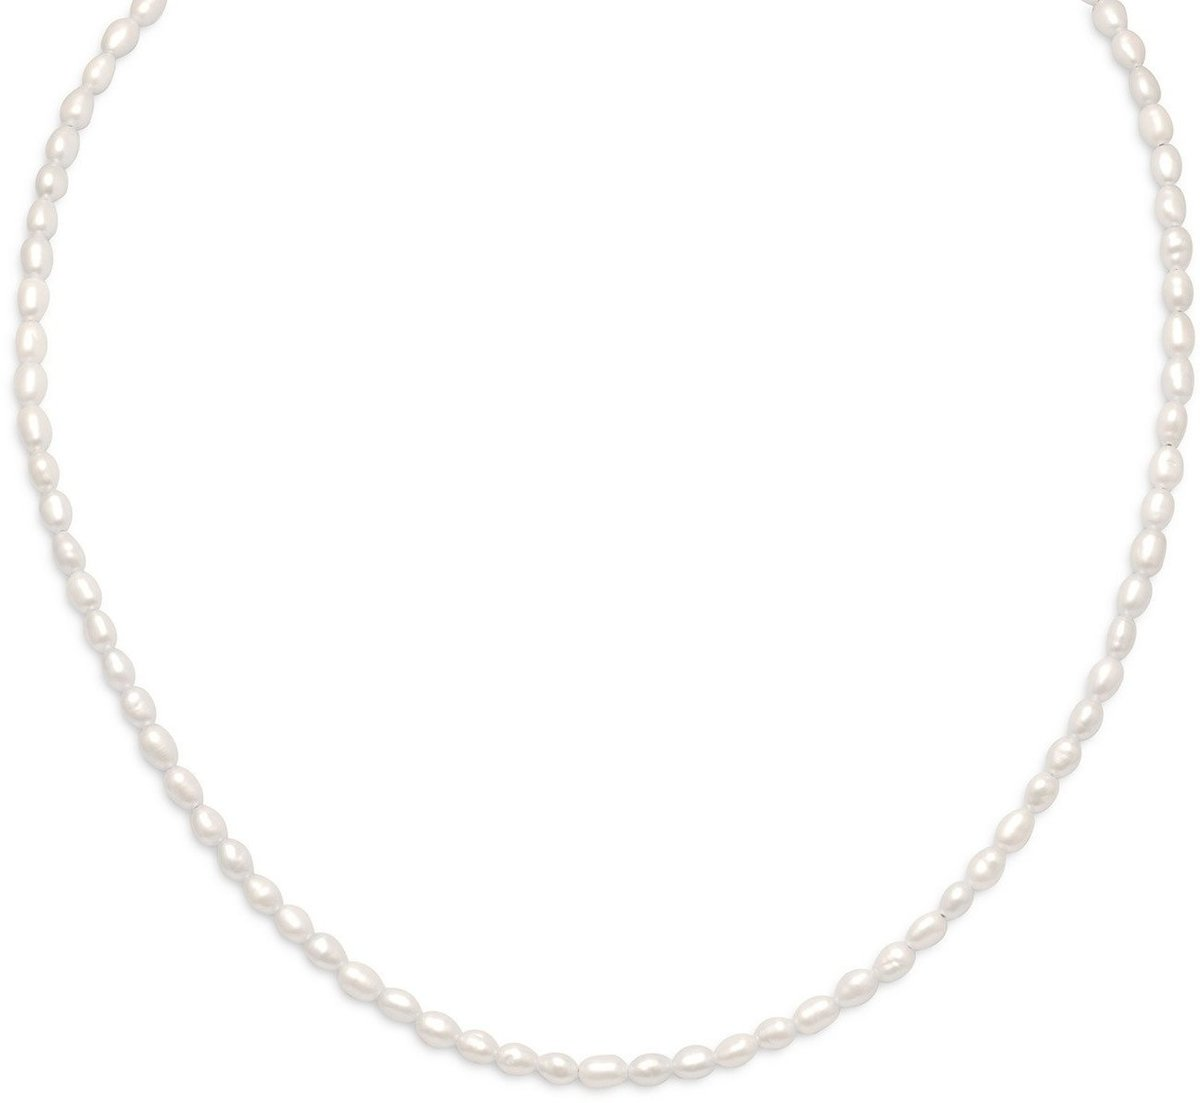 "13""+2"" 14/20 Gold Filled Cultured Freshwater Rice Pearl Necklace"